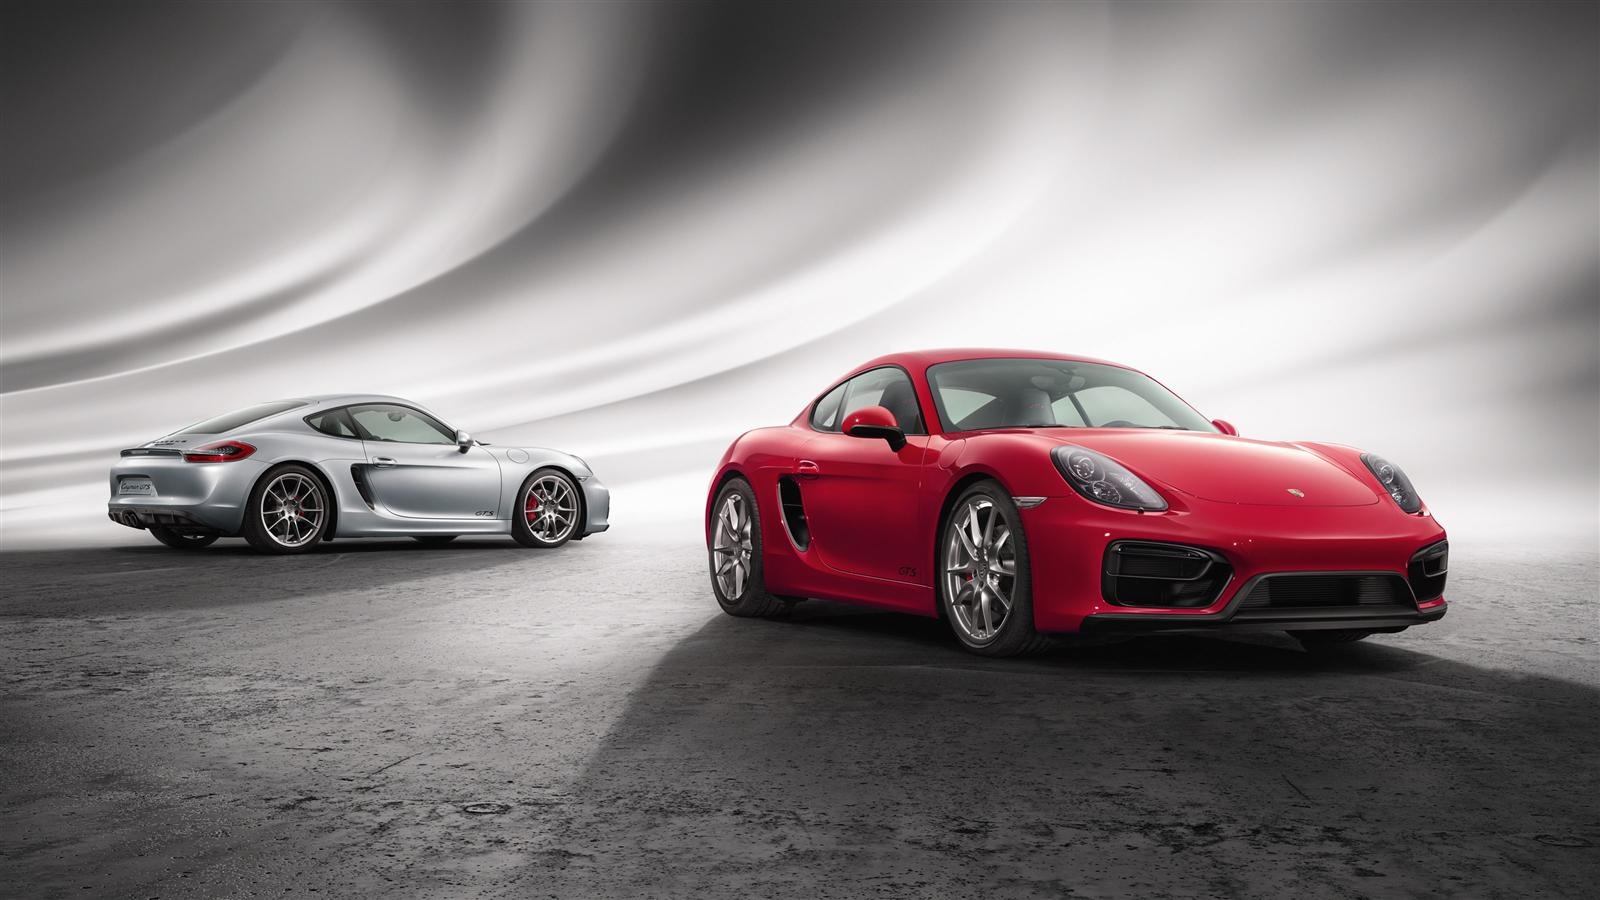 2015 porsche cayman gts review price and specification gearopen. Black Bedroom Furniture Sets. Home Design Ideas